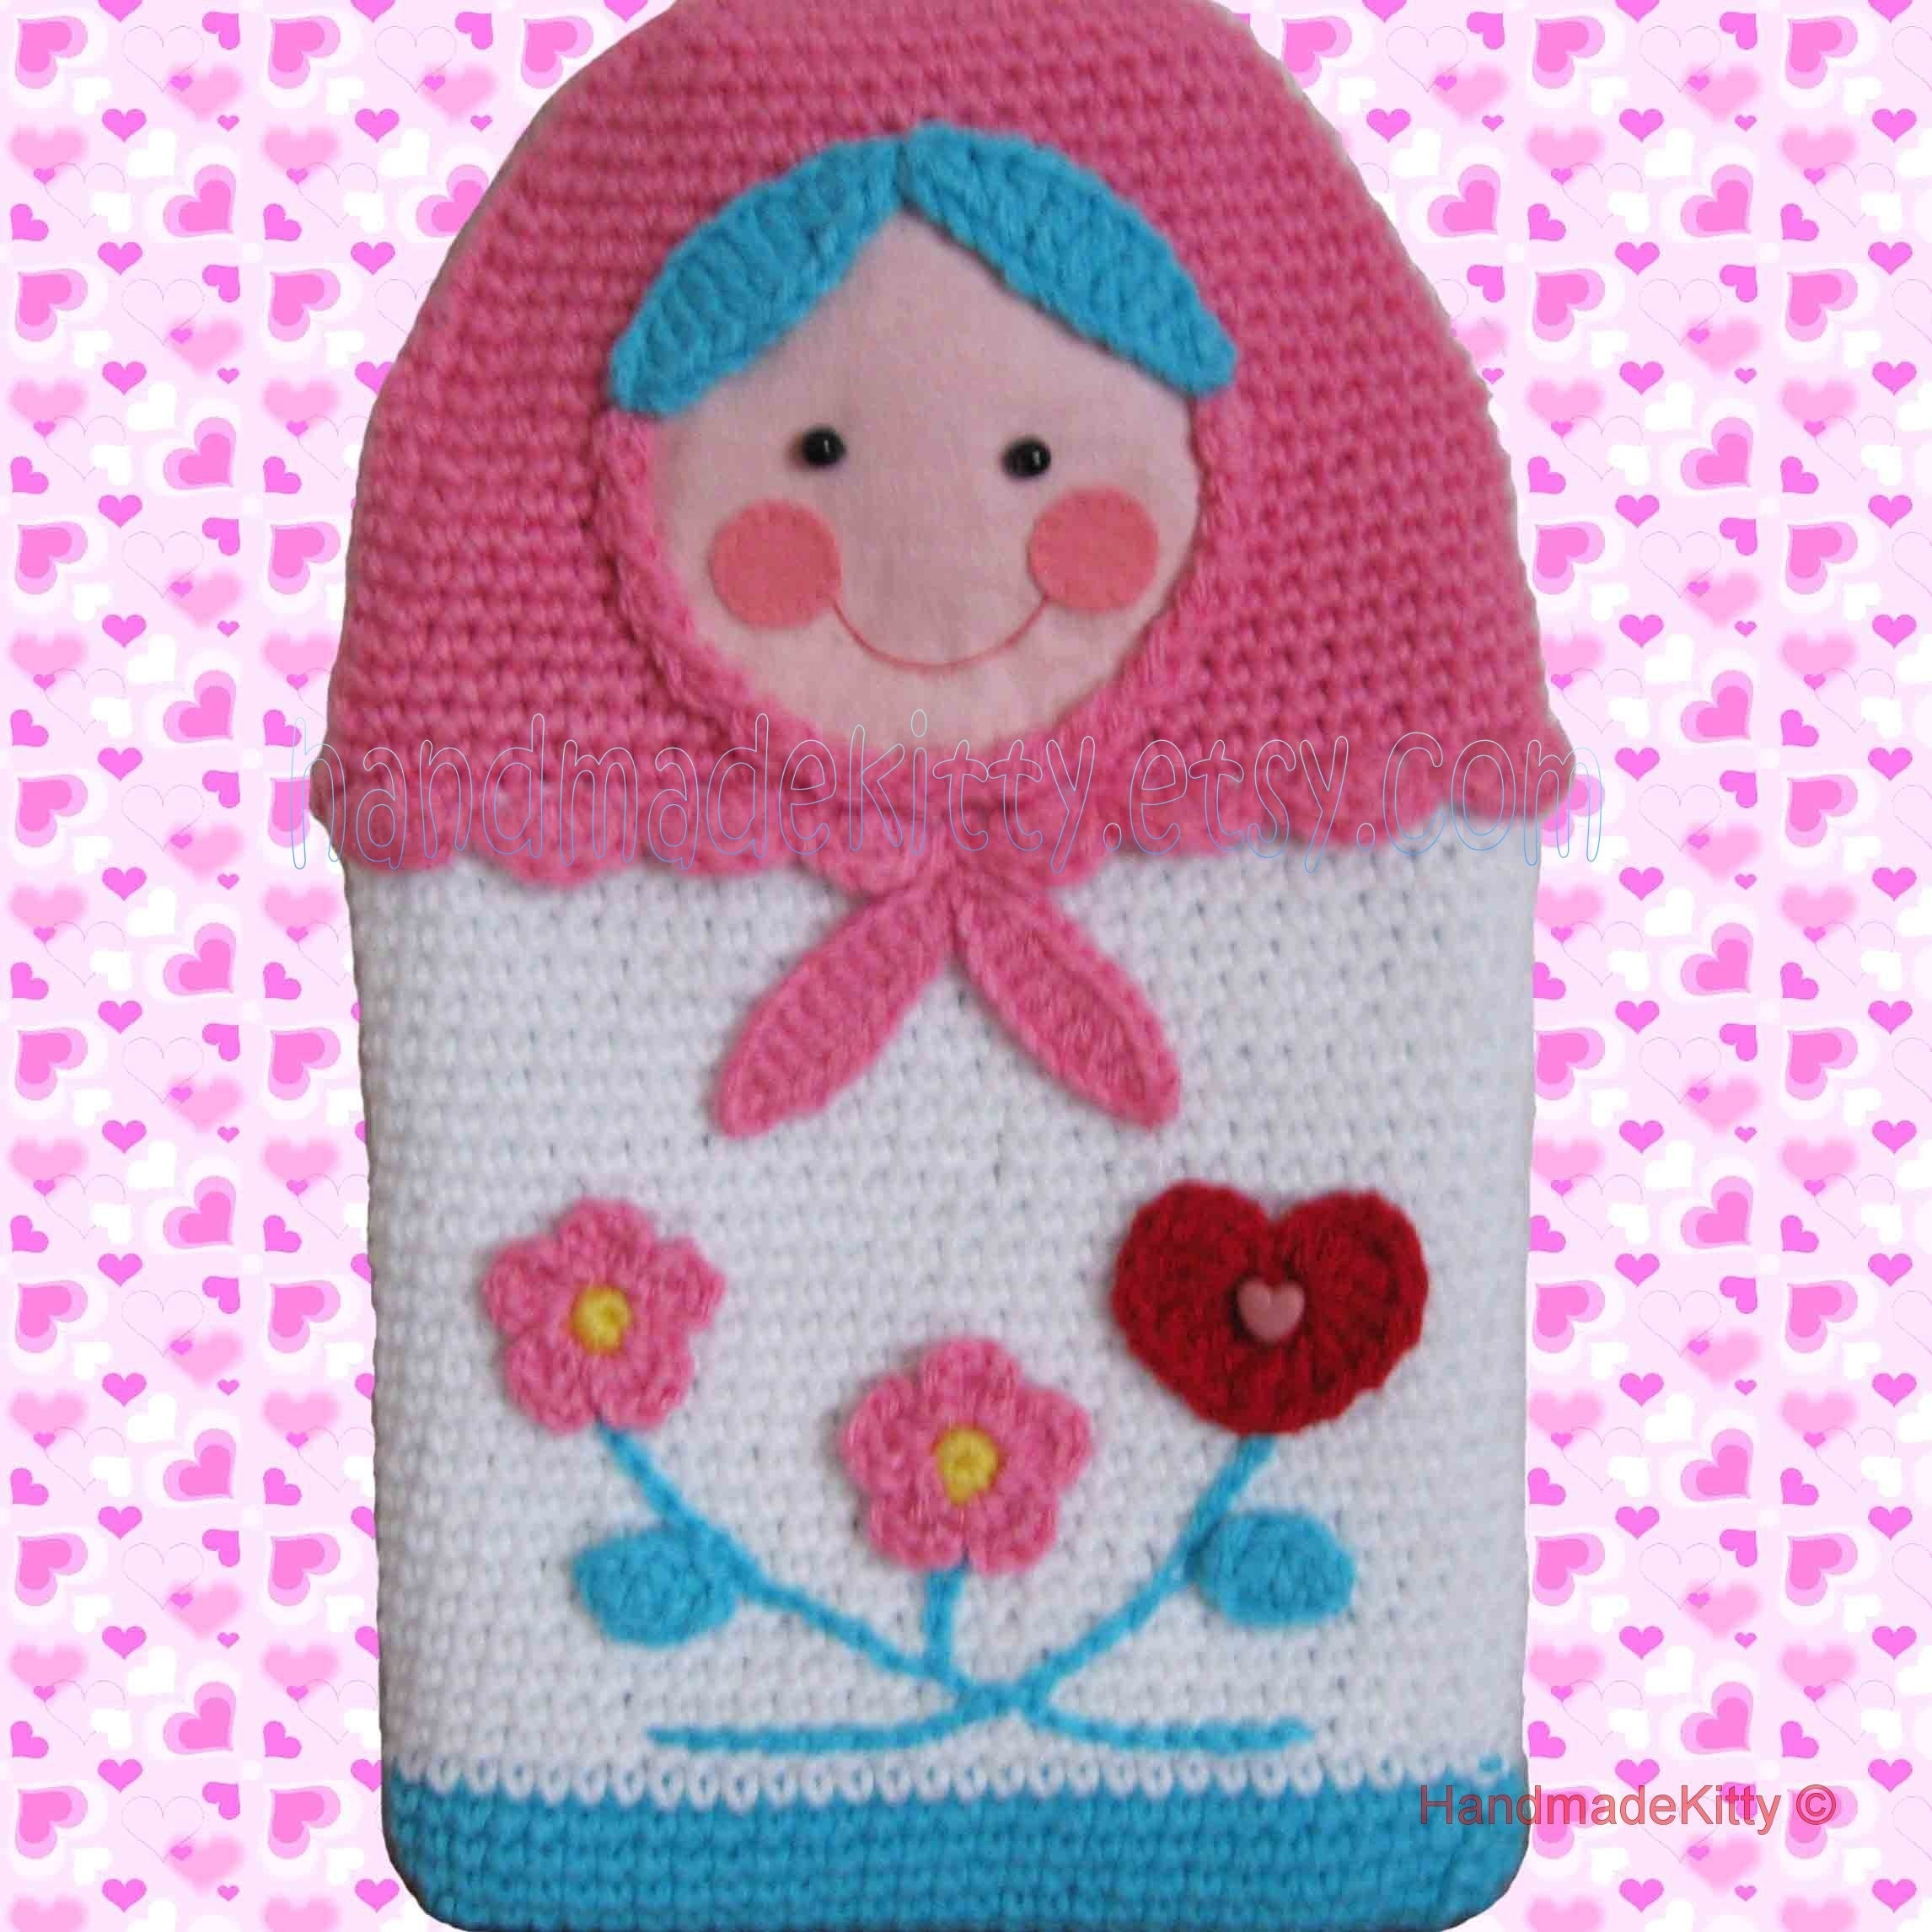 Knitting Pattern Russian Doll : HandmadeKitty: Russian Matryoshka Babushka Doll Hot Water ...